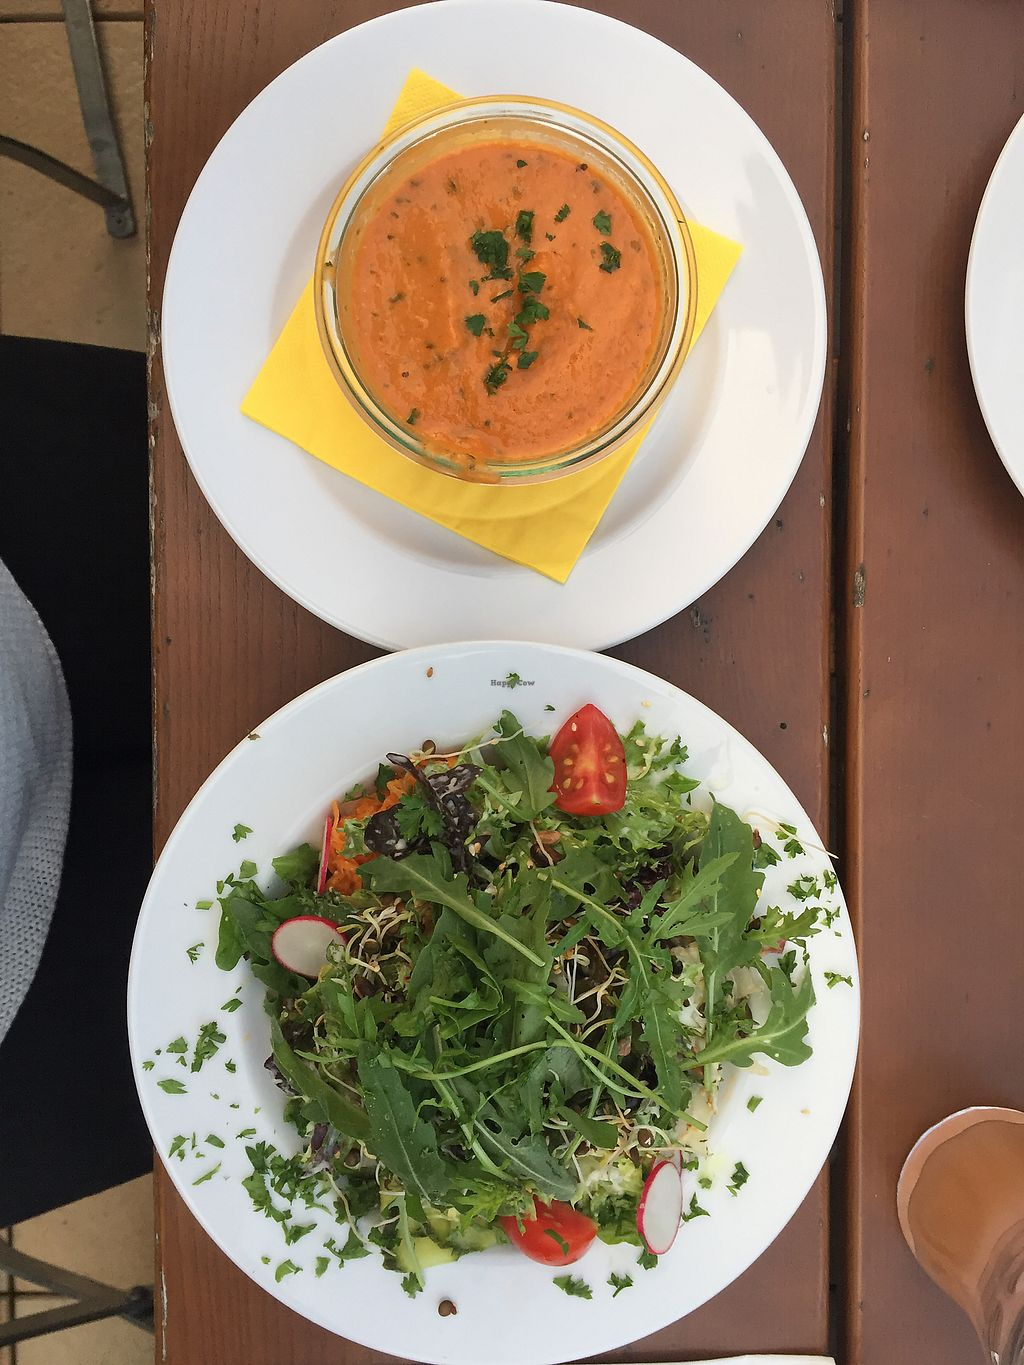 "Photo of Gasthaus zum Anker  by <a href=""/members/profile/vegandesi.res"">vegandesi.res</a> <br/>Vegan tomato creme soup and mixed salad <br/> September 1, 2017  - <a href='/contact/abuse/image/67995/299755'>Report</a>"